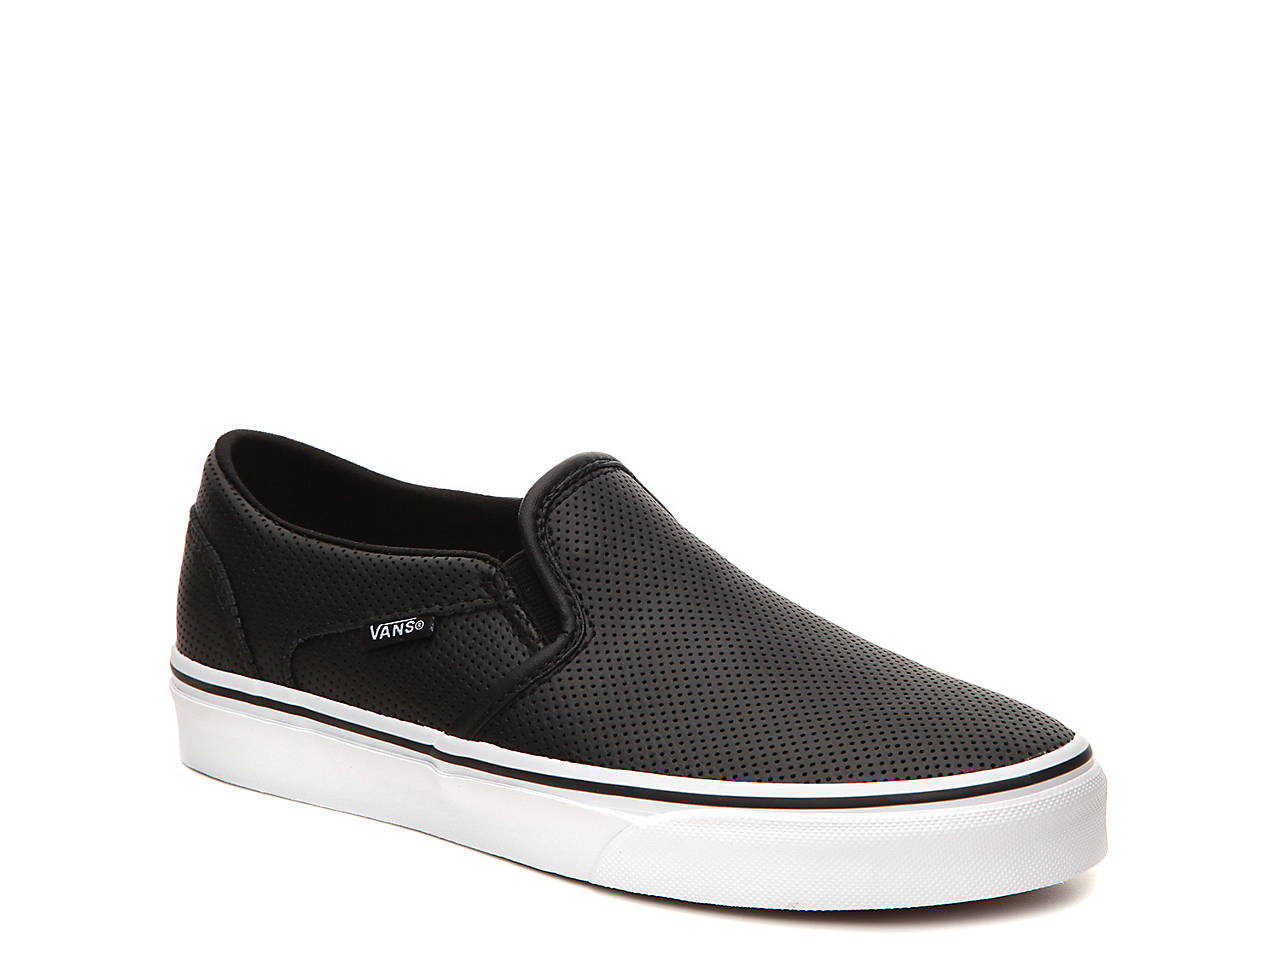 van slip on shoes